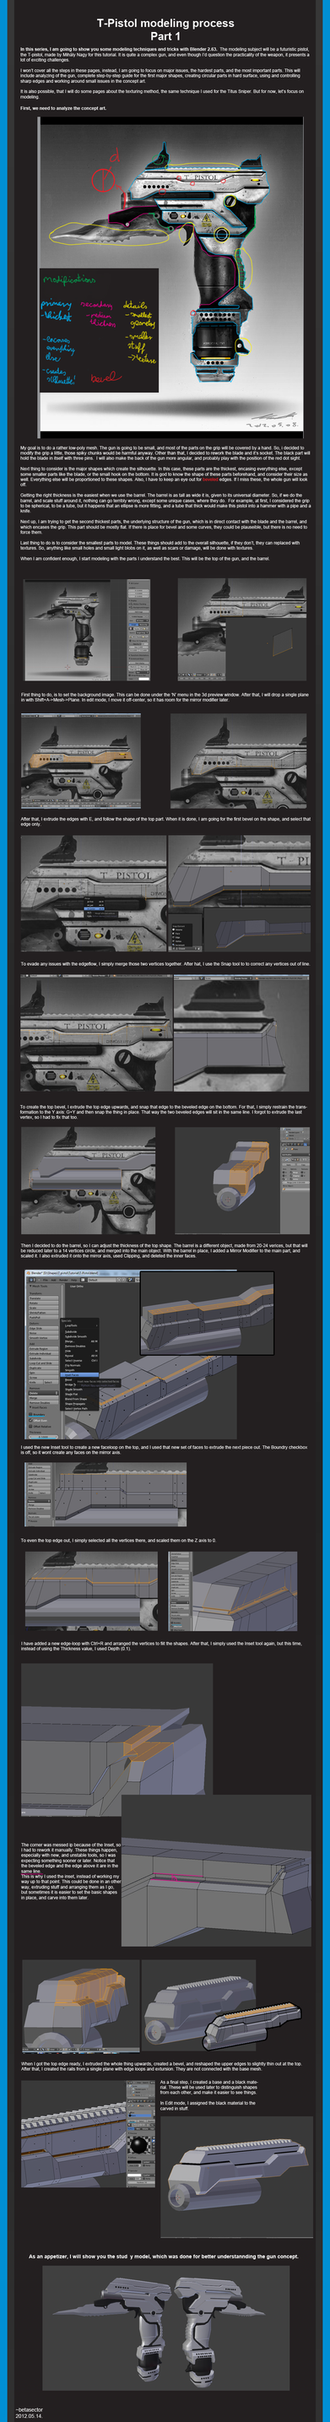 T-Pistol tutorial p1 by betasector